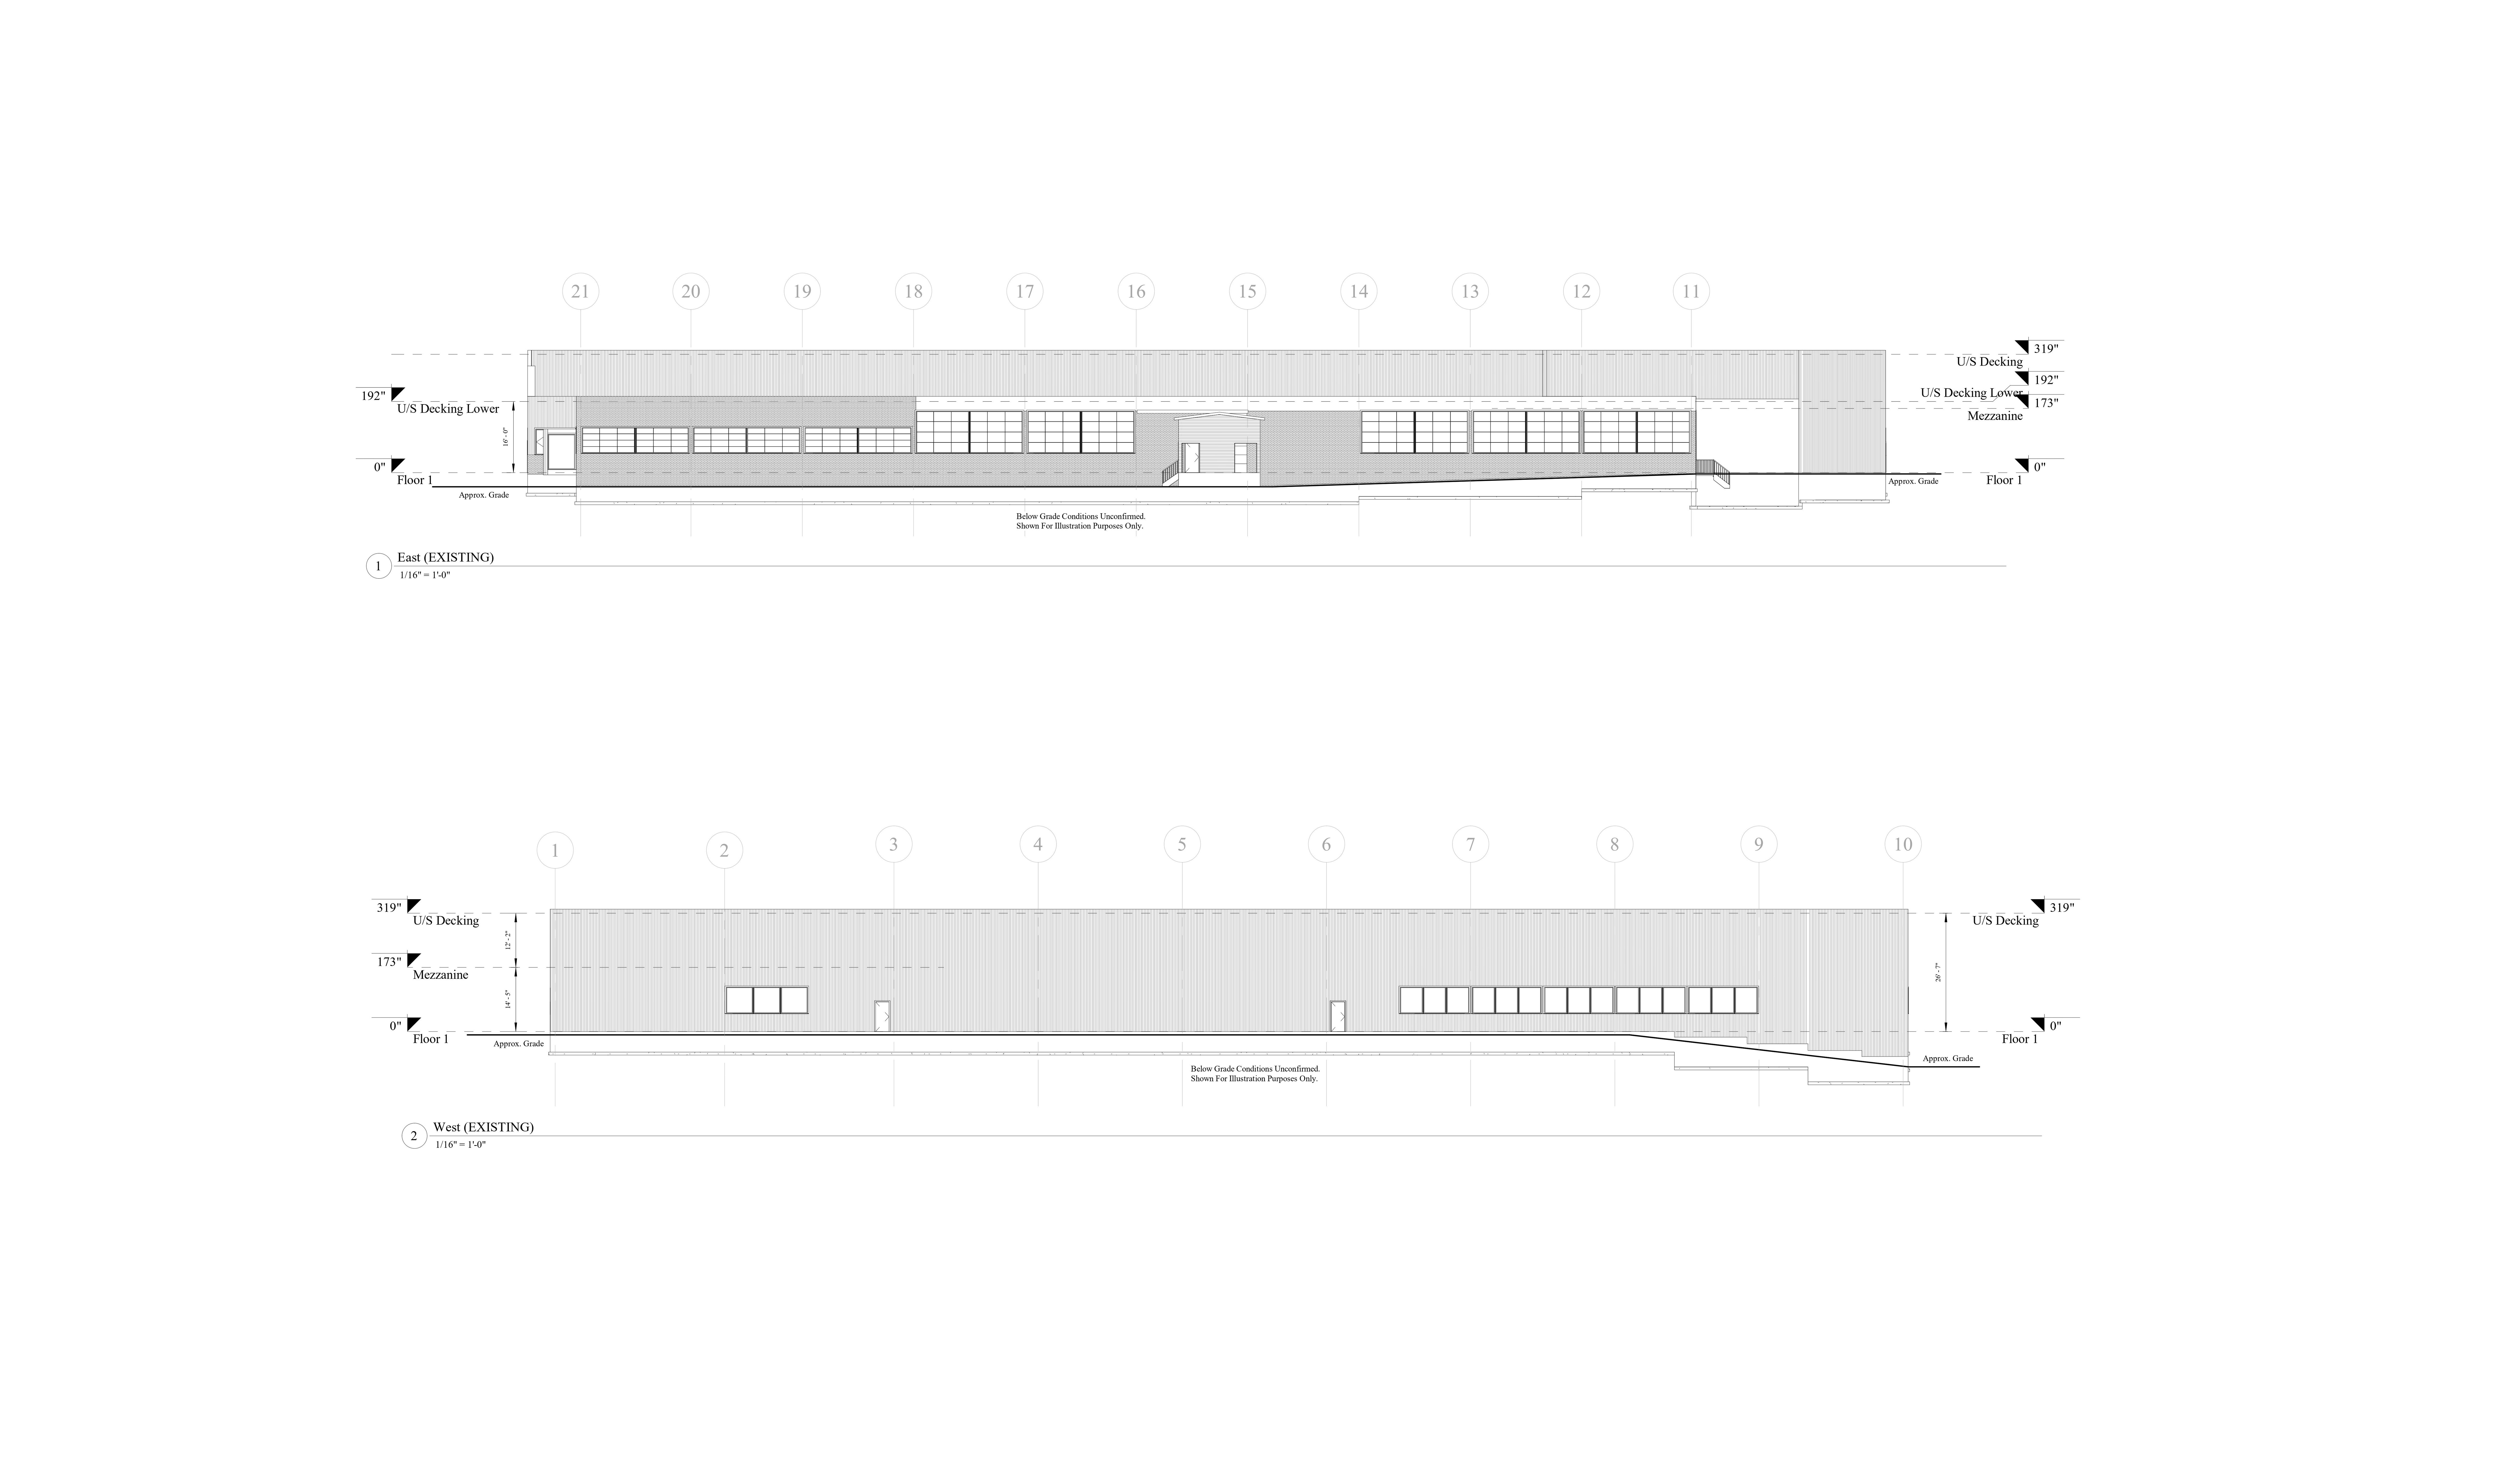 the AutoCad drawings of 2D elevation of the east and west viewpoints of the building.